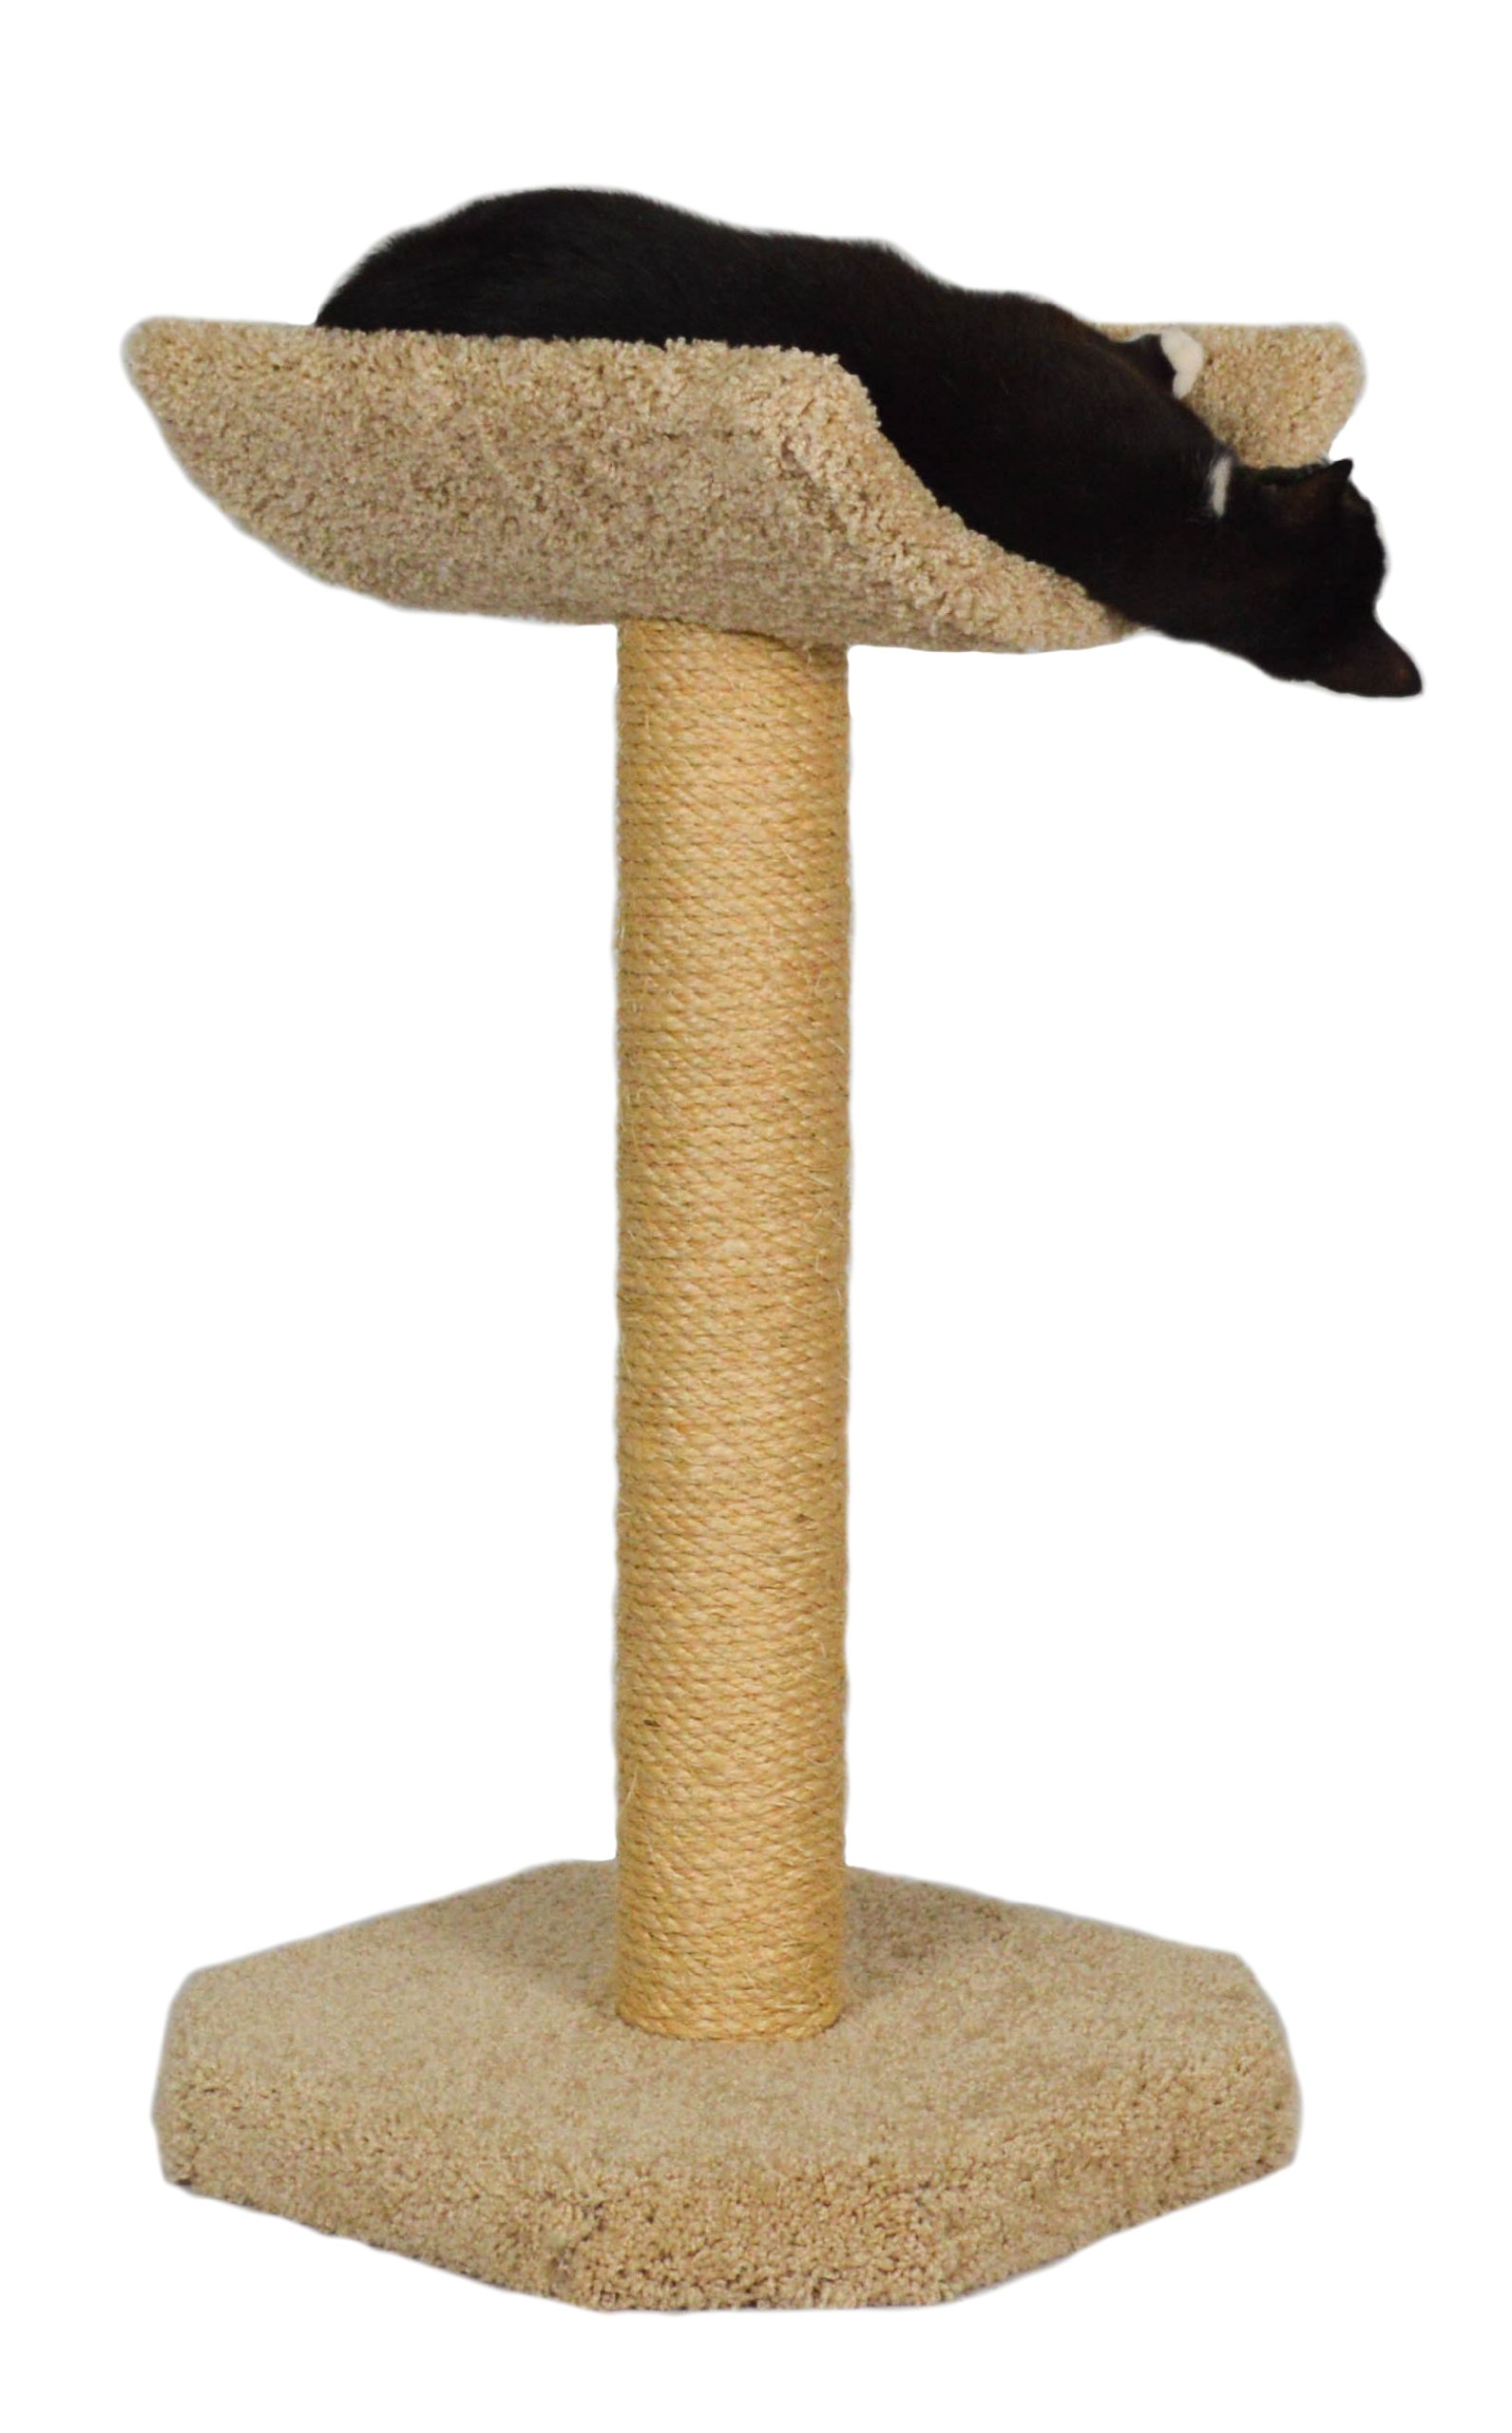 Molly and Friends ''Kitty Cot Premium Handmade One Tier Sisal Cat Scratching Post Furniture with Cradle, Model Scr/c, Beige by Molly and Friends